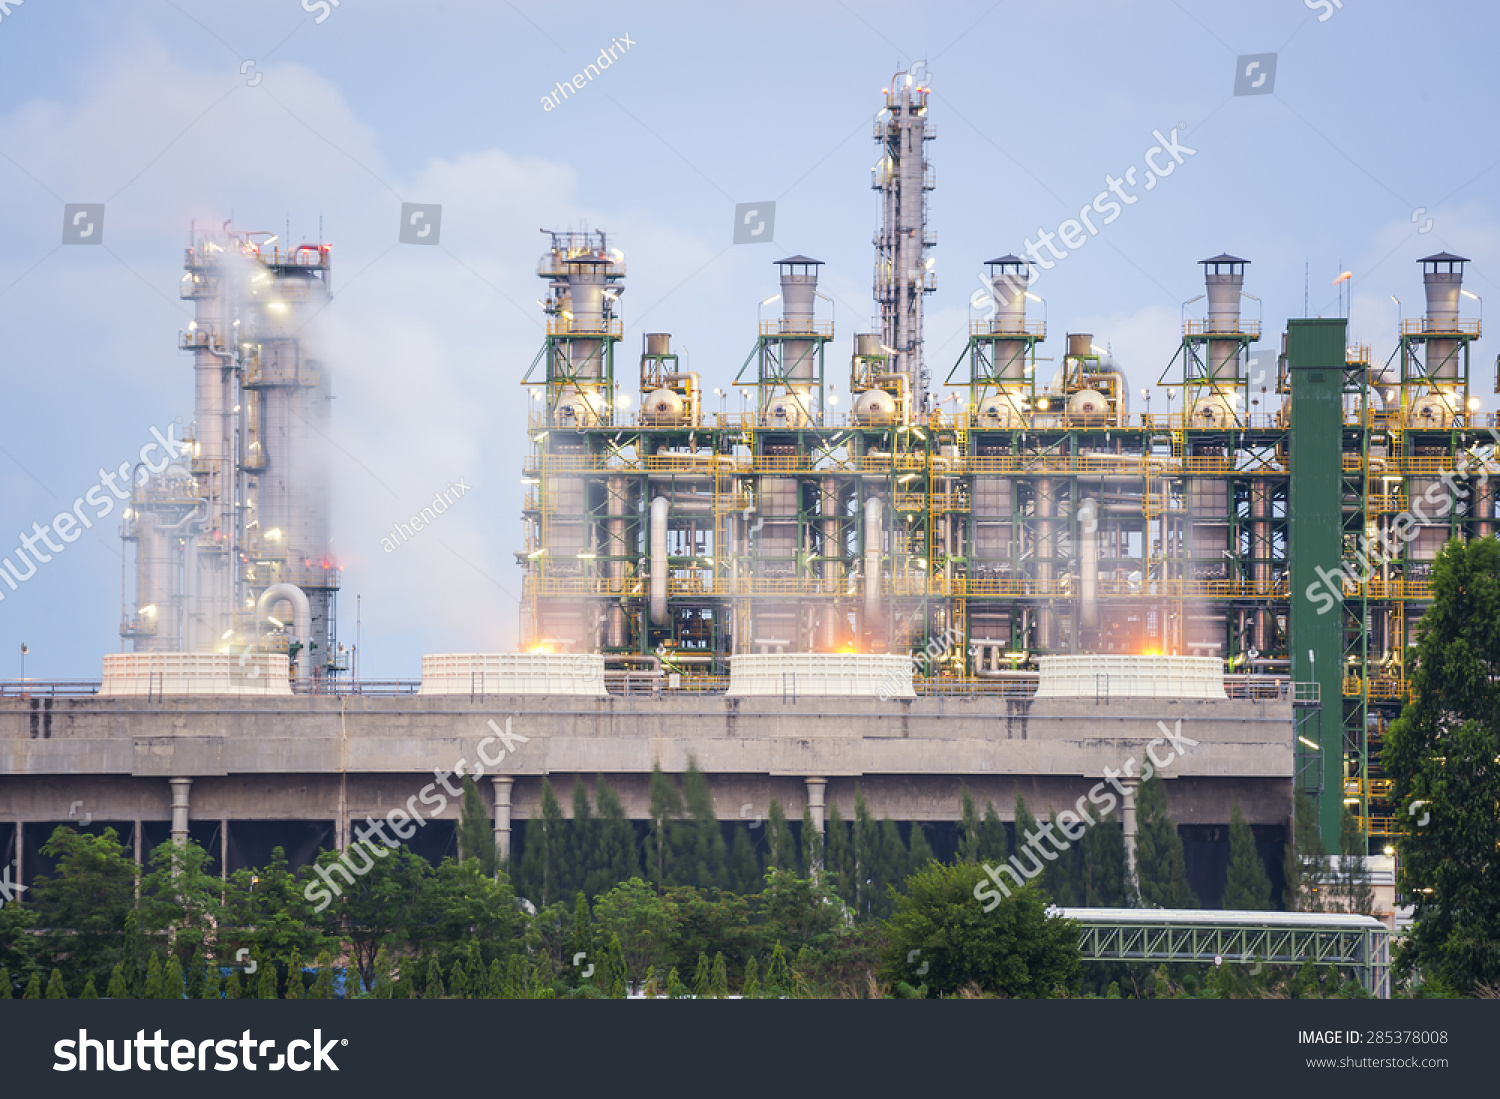 Closein Boiler Closeup Boiler Stream Refinery Plant Stock Photo Edit Now